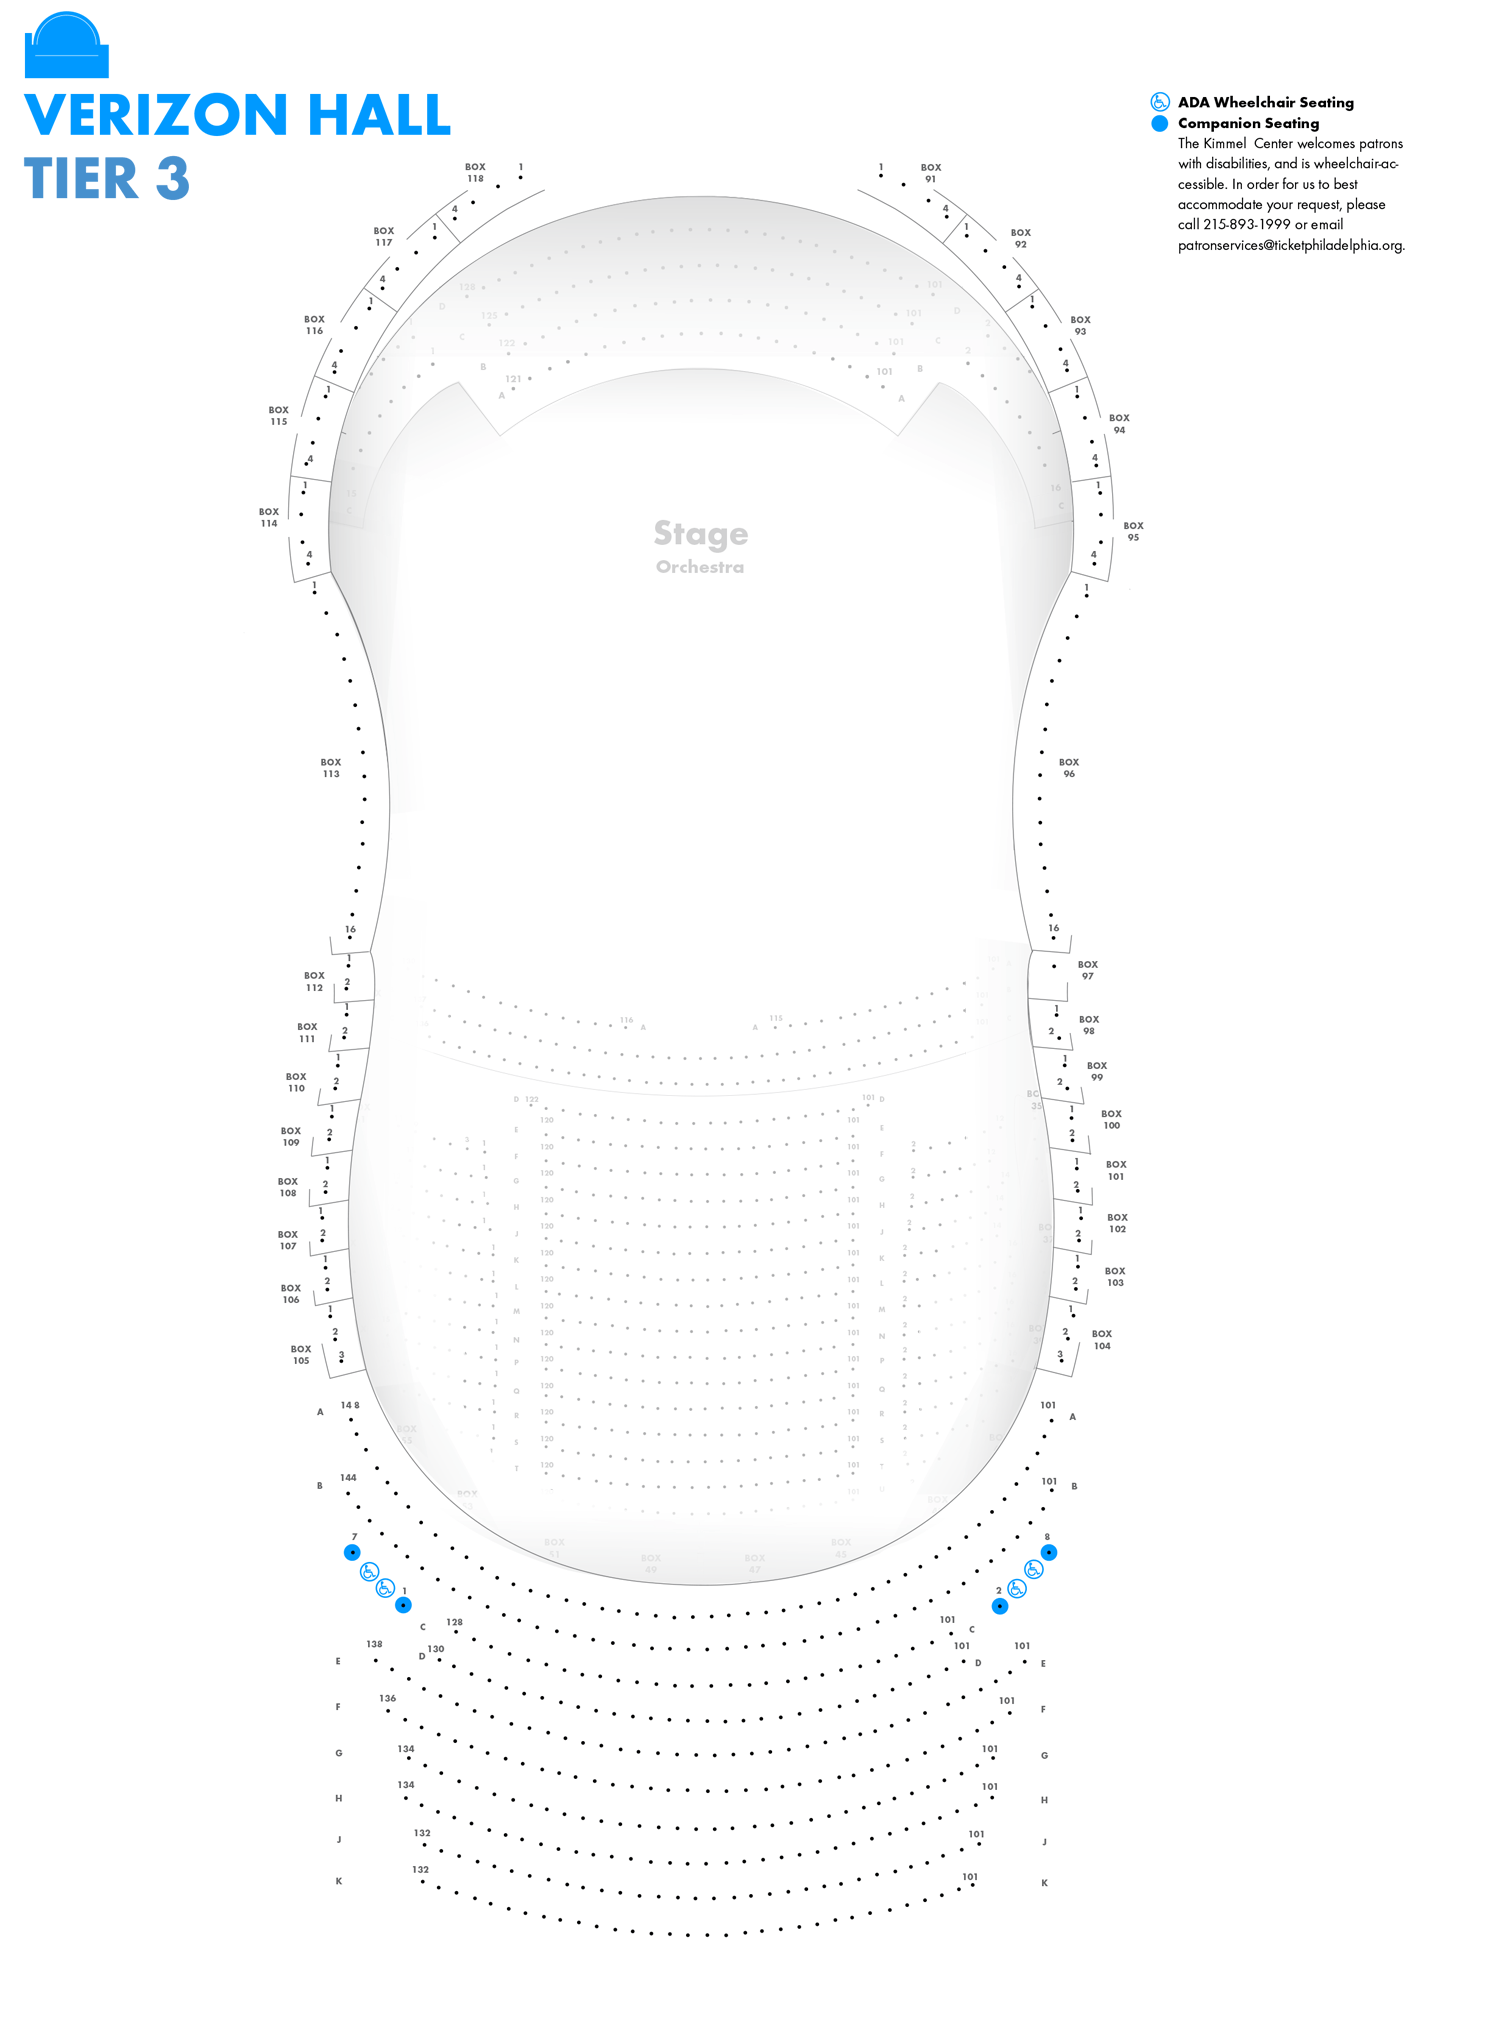 Verizon Hall - Third Tier - Seating Chart